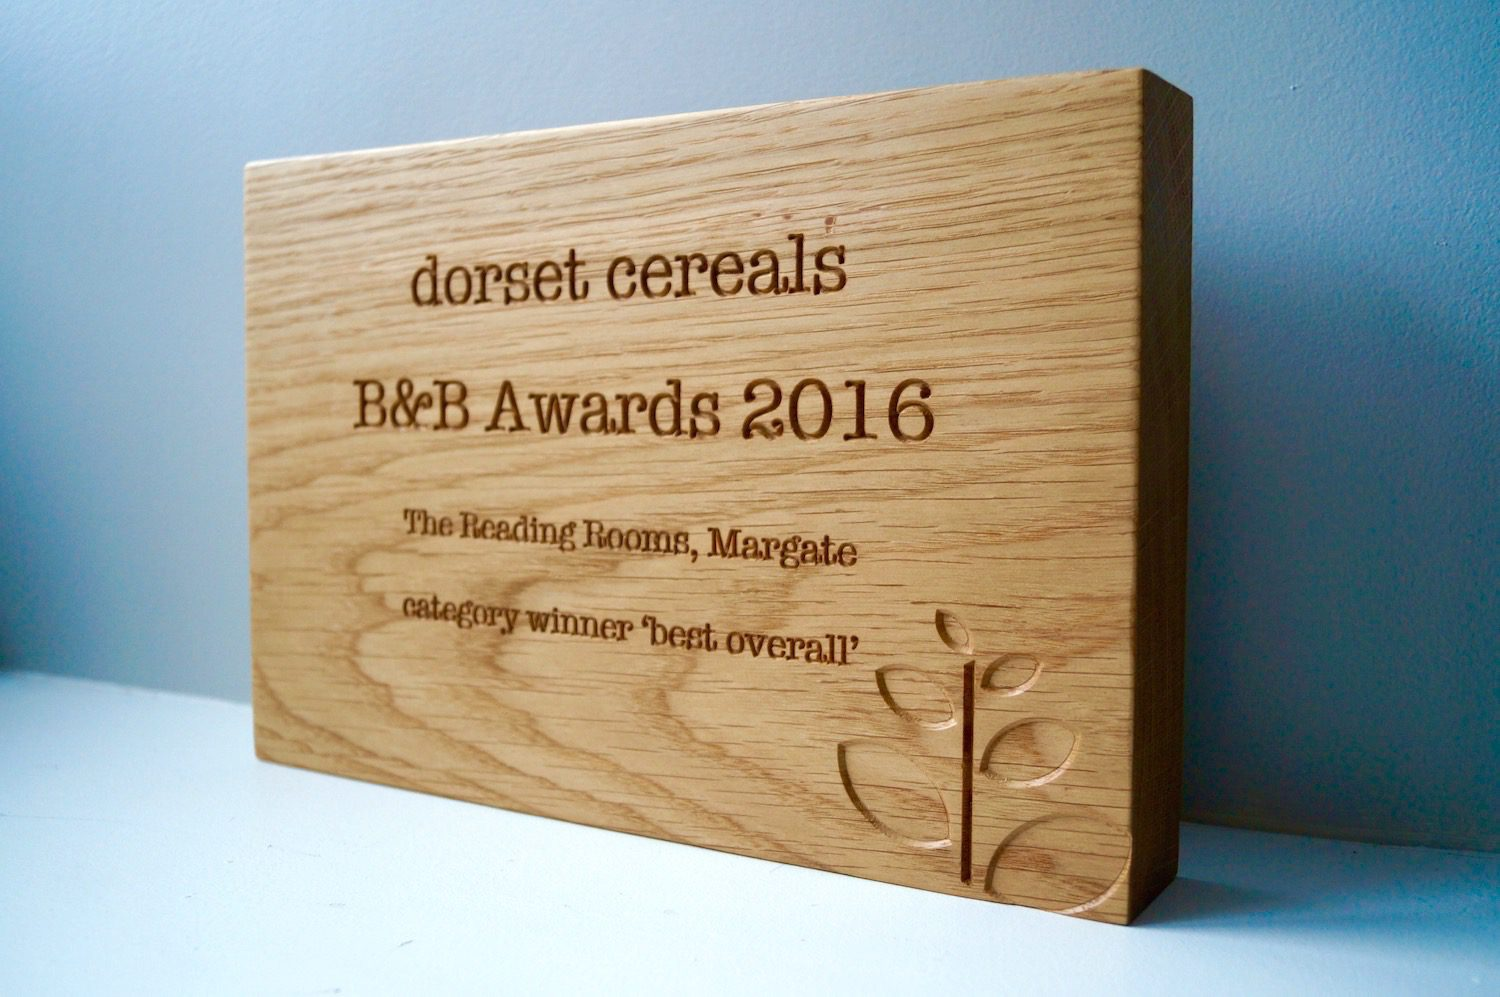 personalised-wooden-award-plaques-dorset-cereals-makemesomethingspecial.com